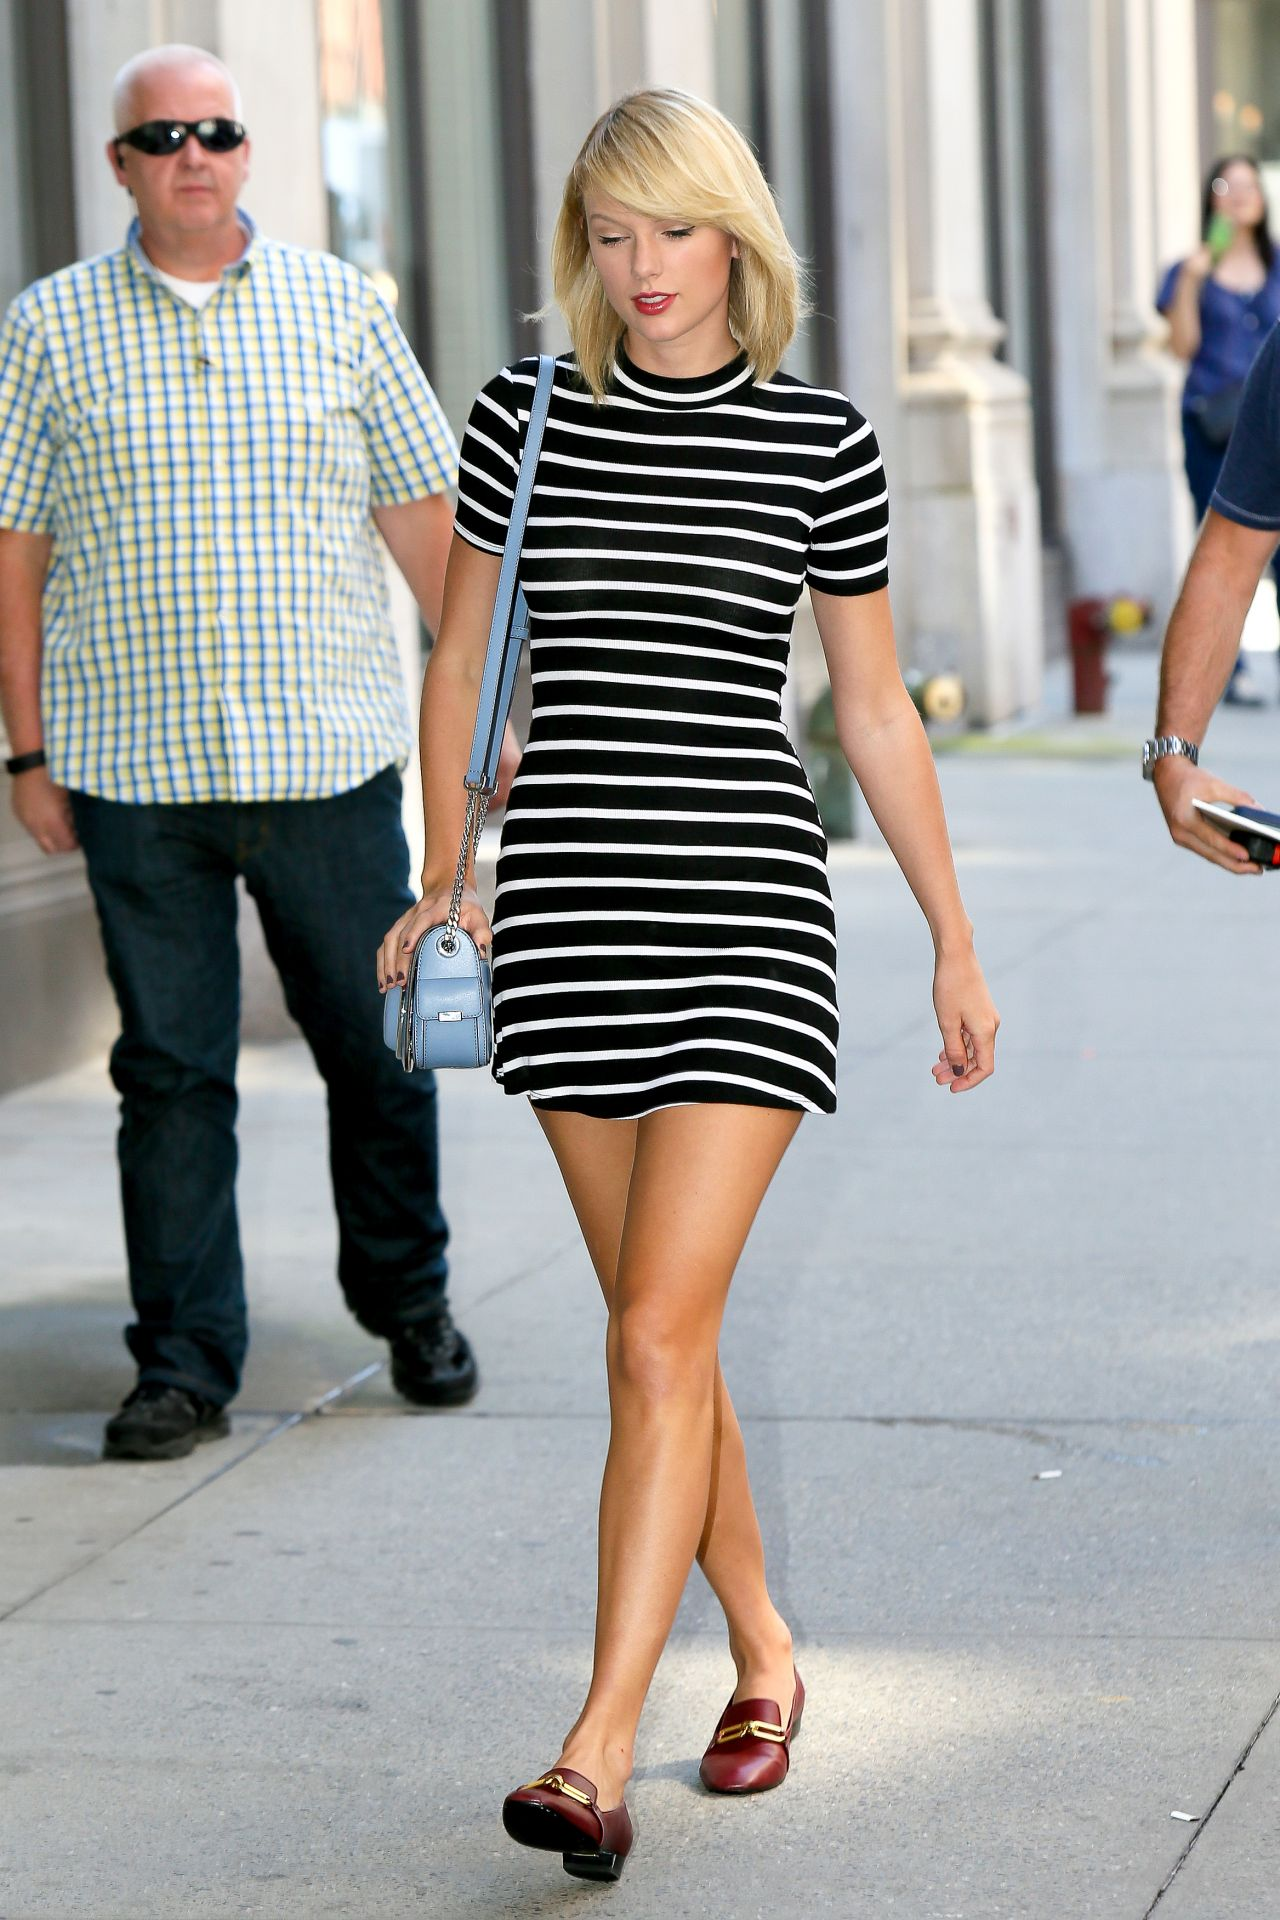 Taylor Swift In Mini Dress Out In New York 09 14 2016